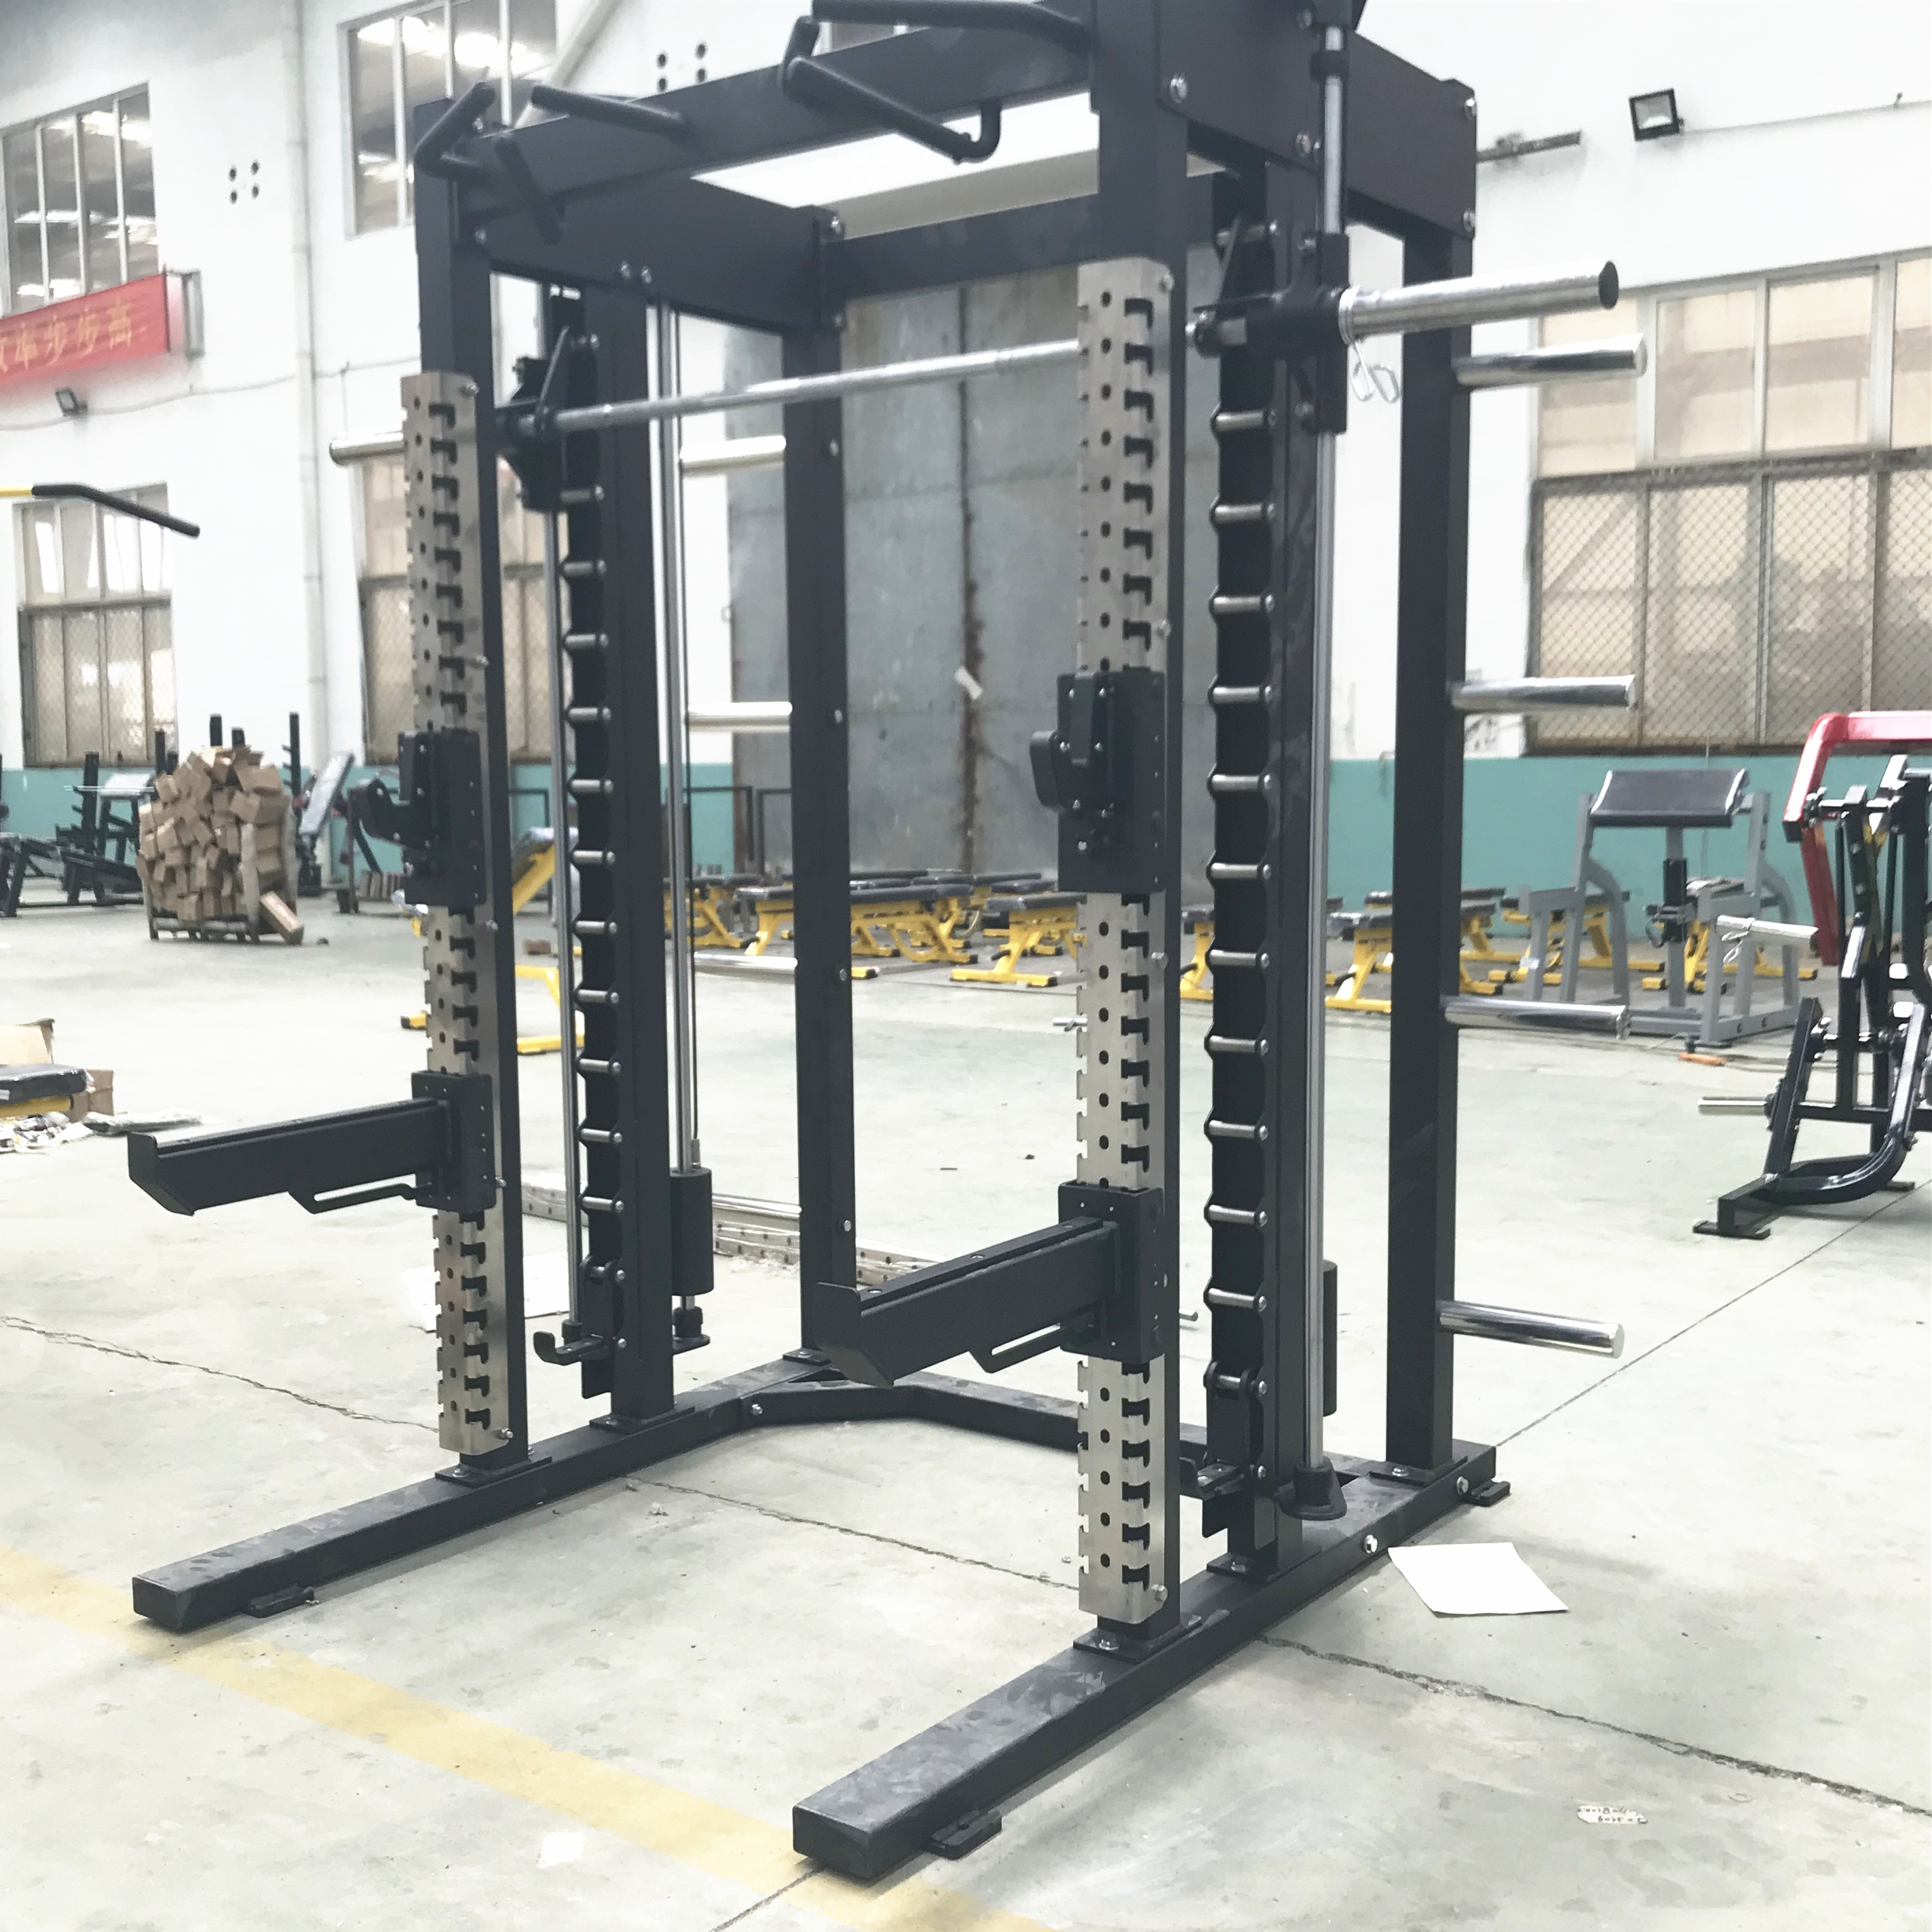 Nuovo Disegno Palestra Multi Smith Power Rack Per Il Fitness